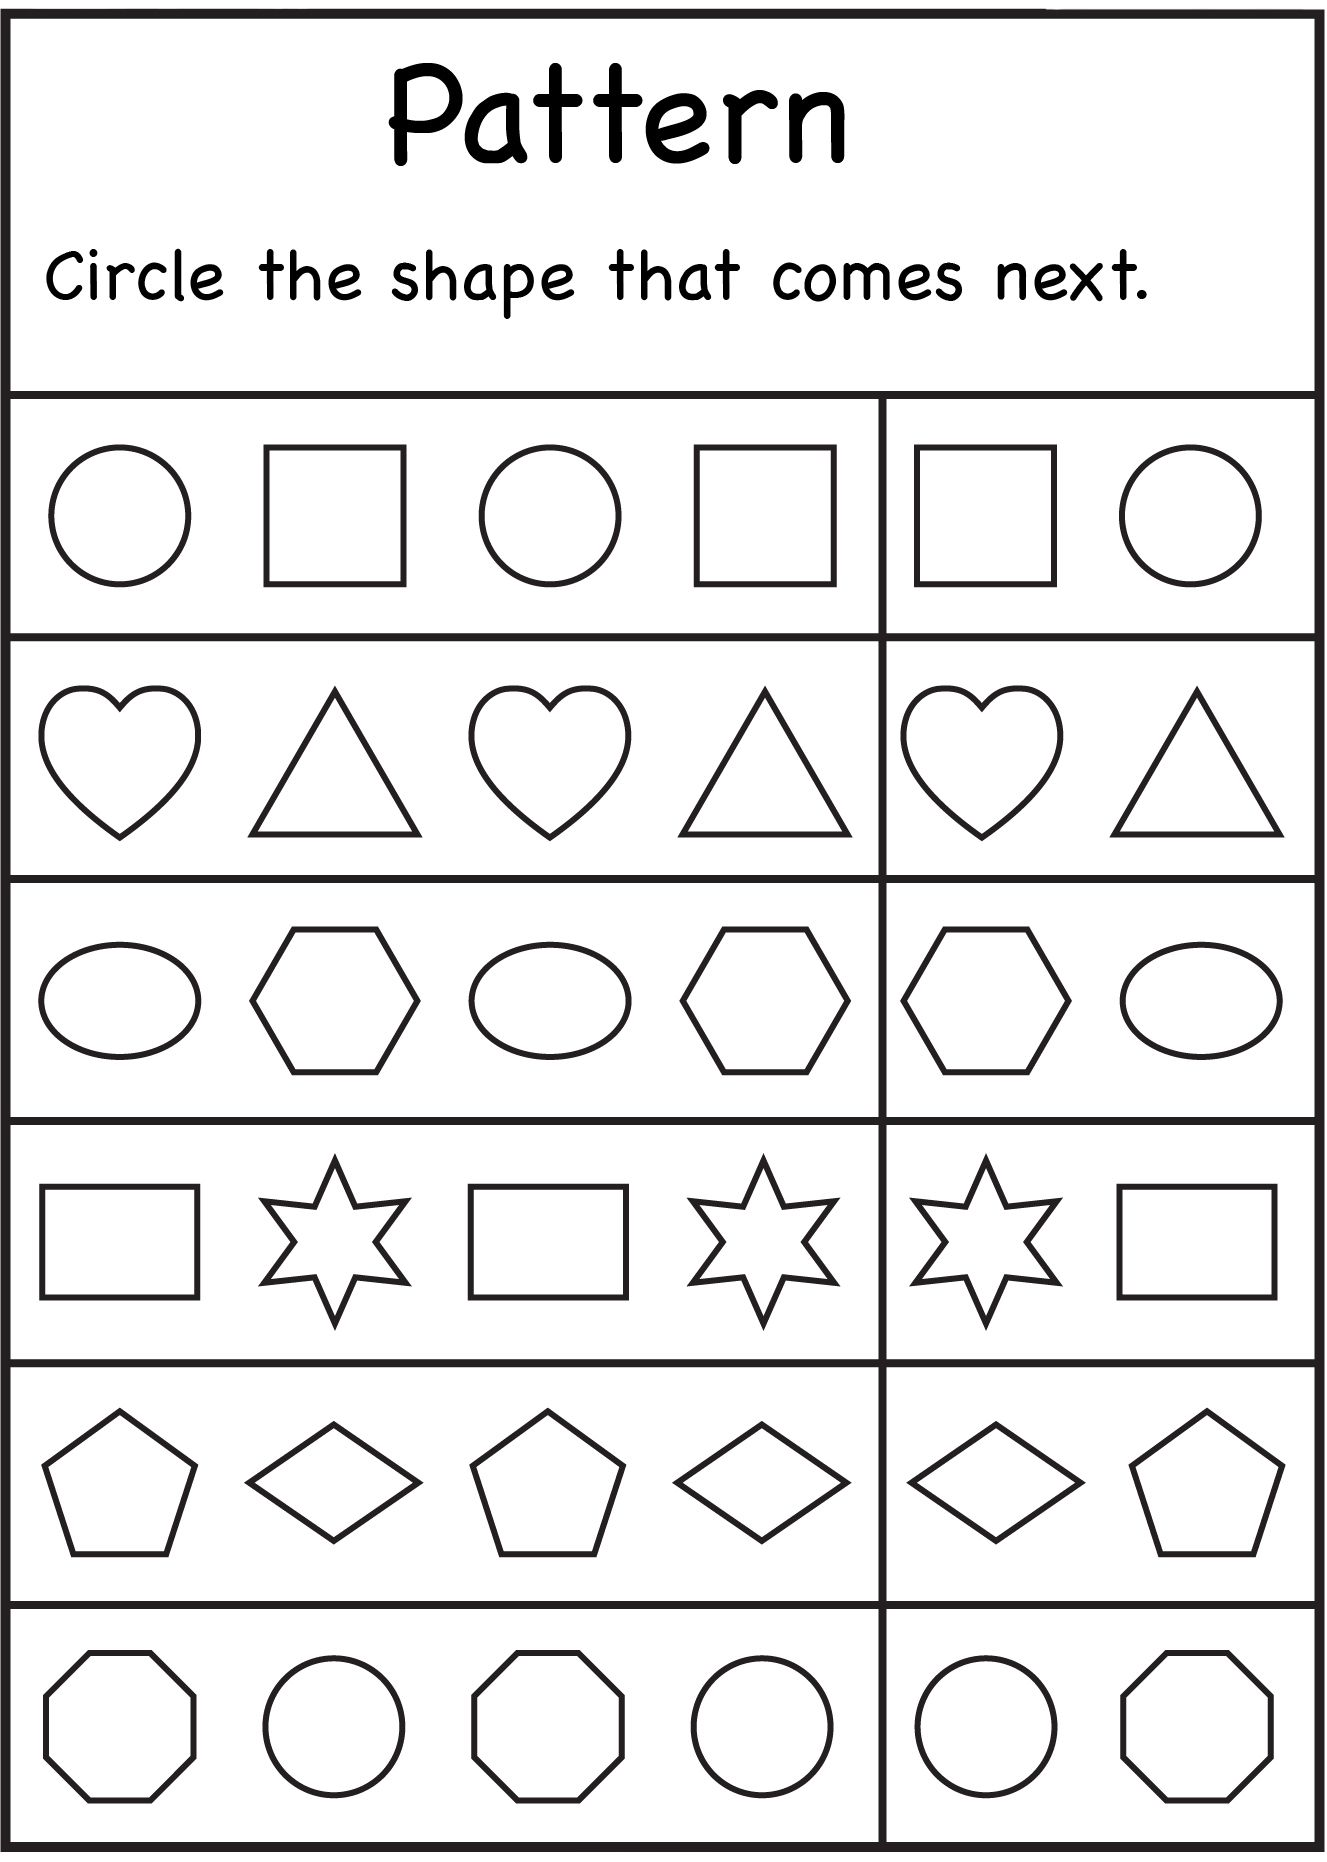 18 Best Fall Worksheets For Toddlers Images On Best